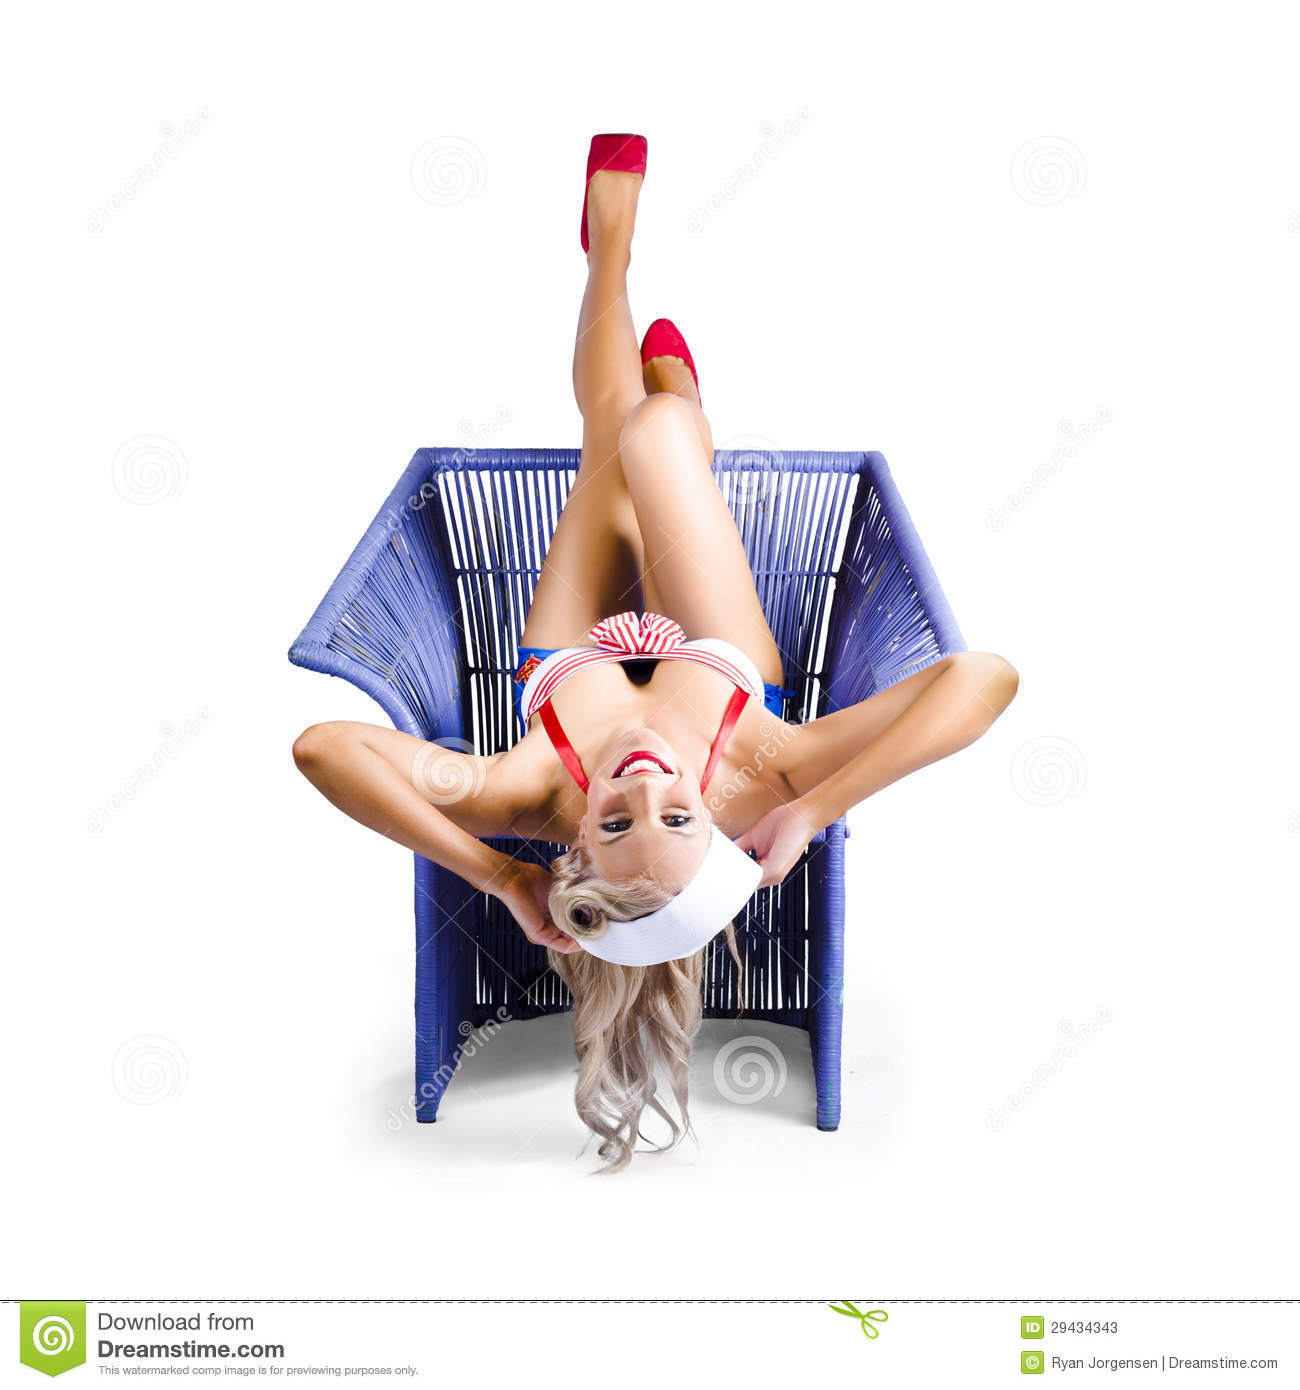 Talented Nude girl upside down chair